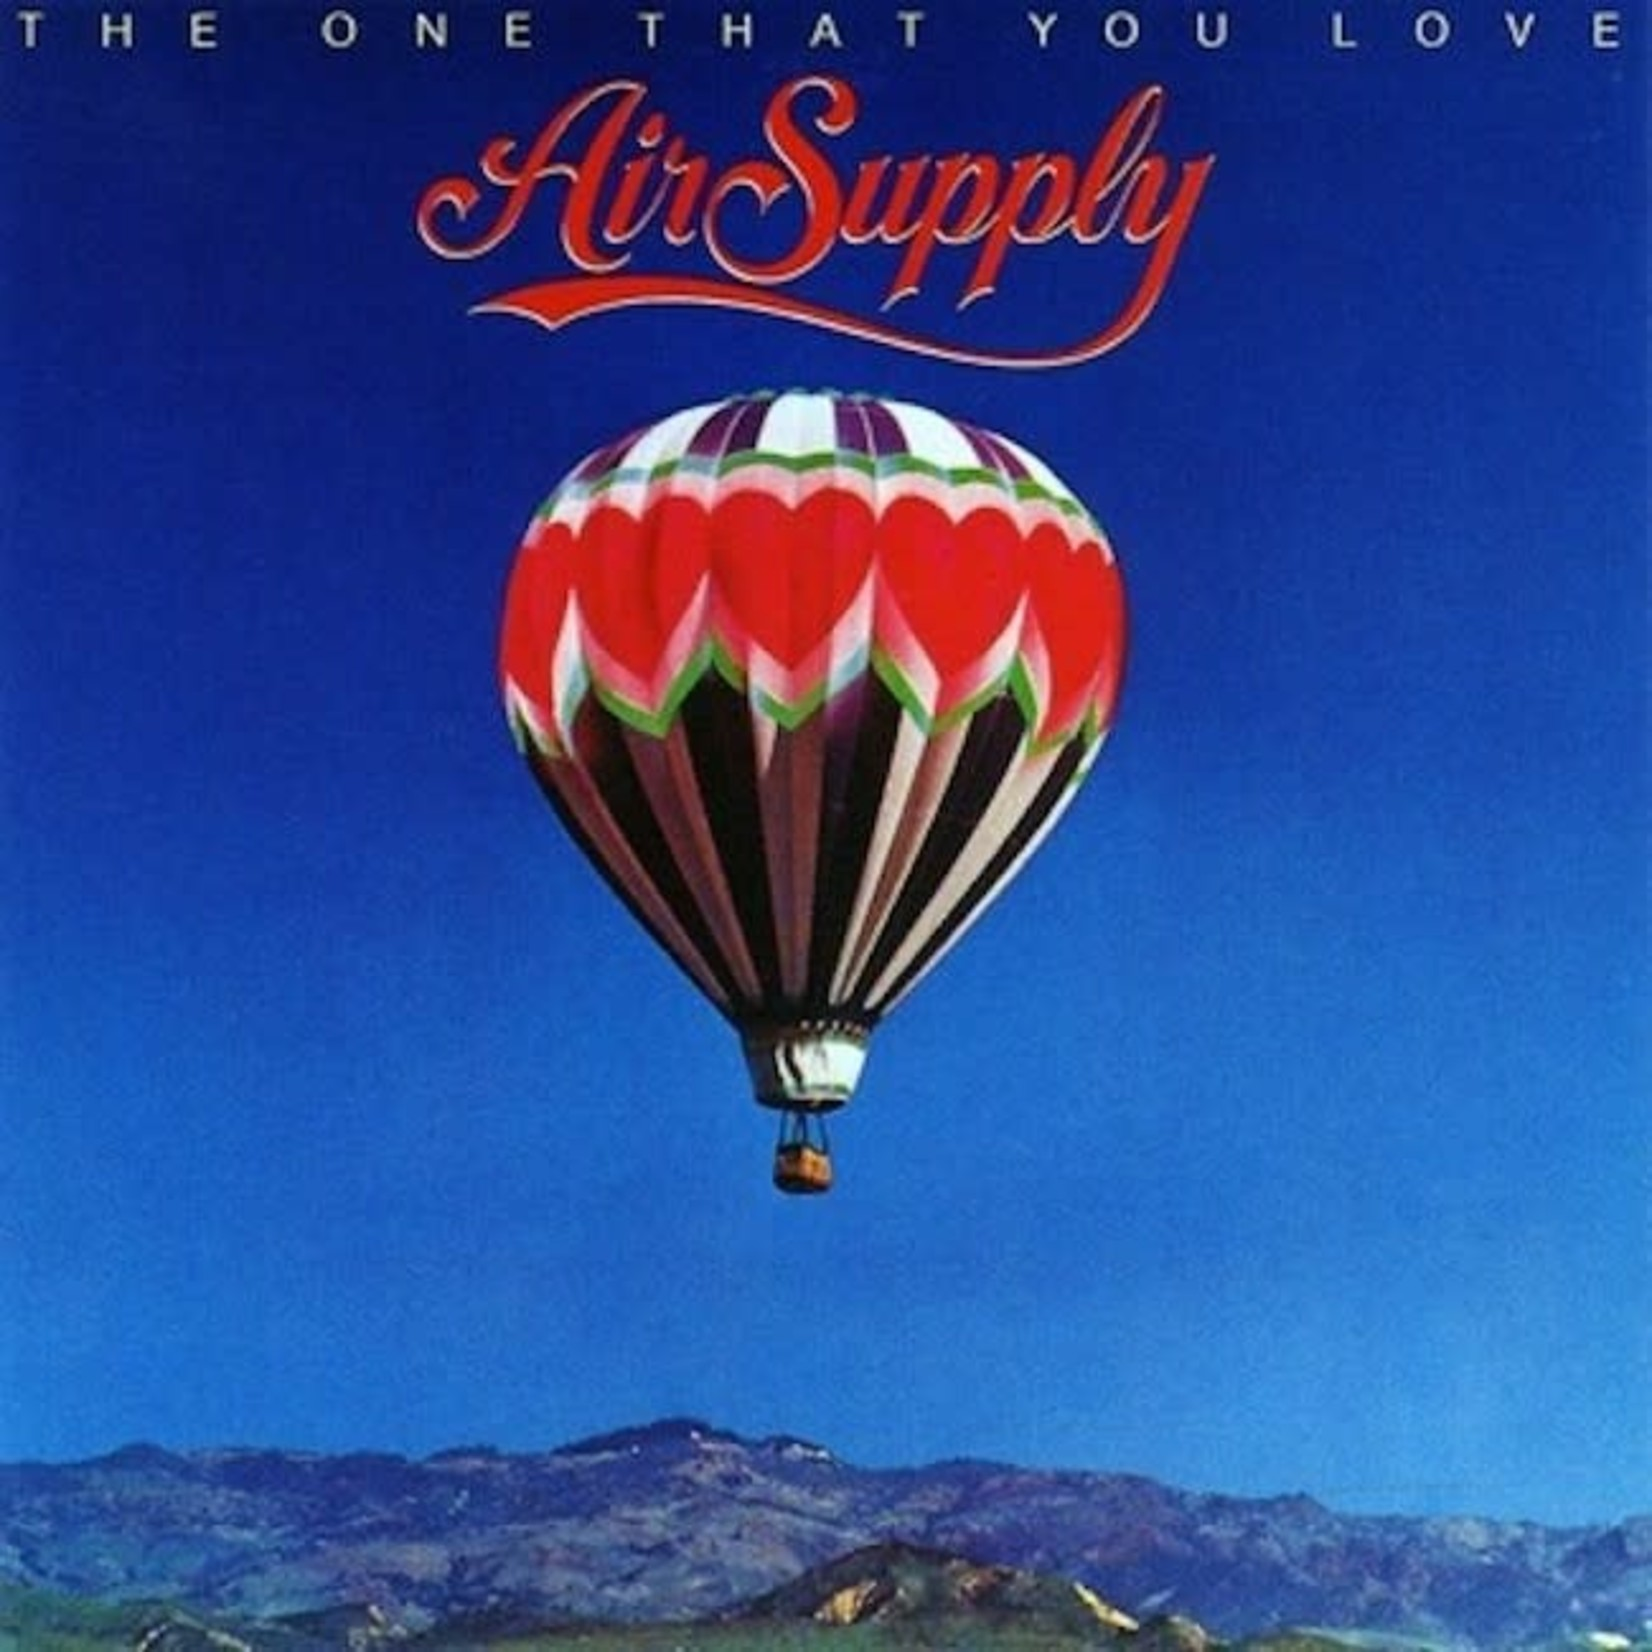 [Vintage] Air Supply: The One That You Love